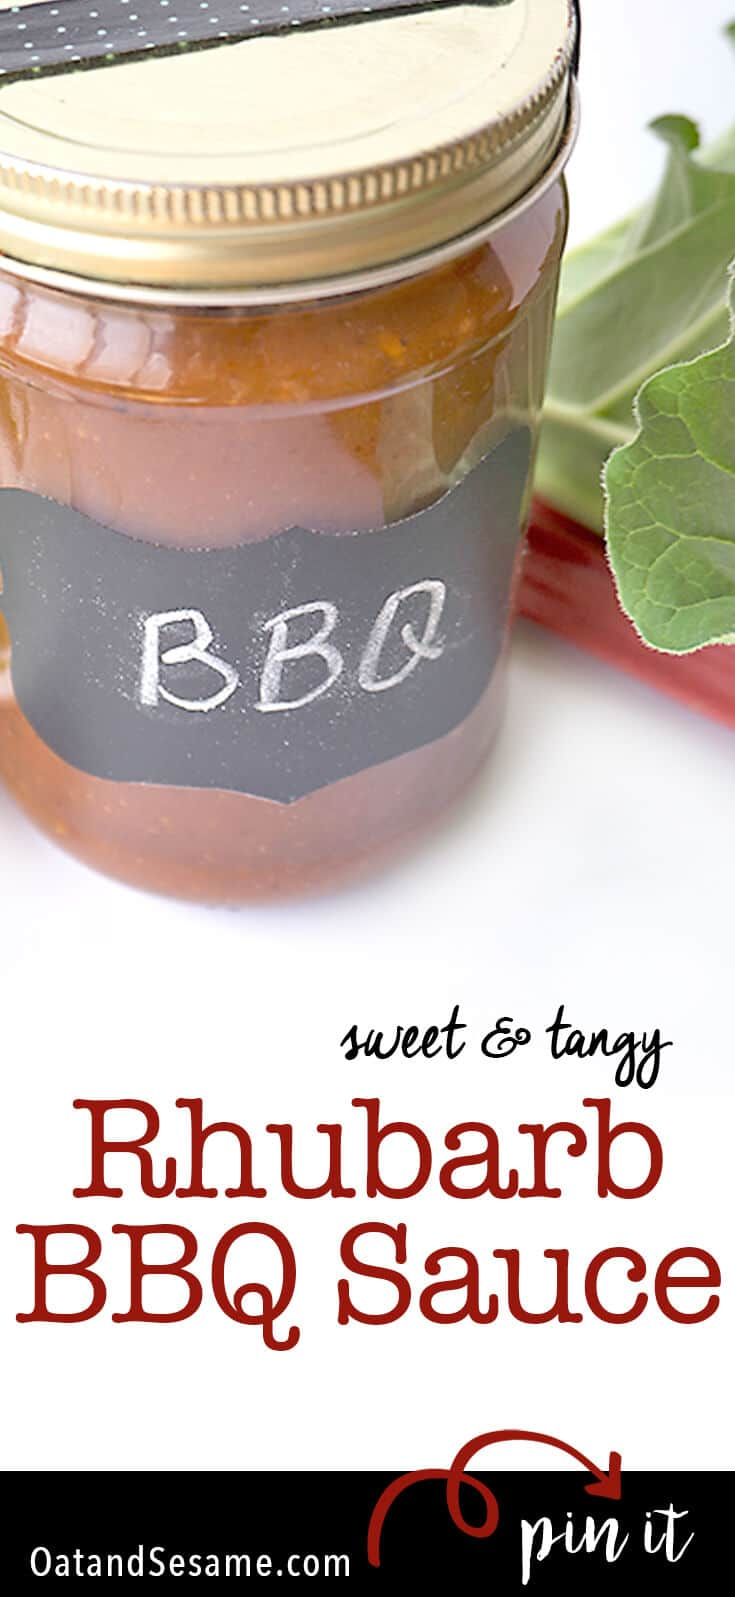 A fresh and tangy BBQ SAUCE featuring RHUBARB!!| SUMMER | #RHUBARB | #BBQ | #SAUCE | #Recipes at OatandSesame.com